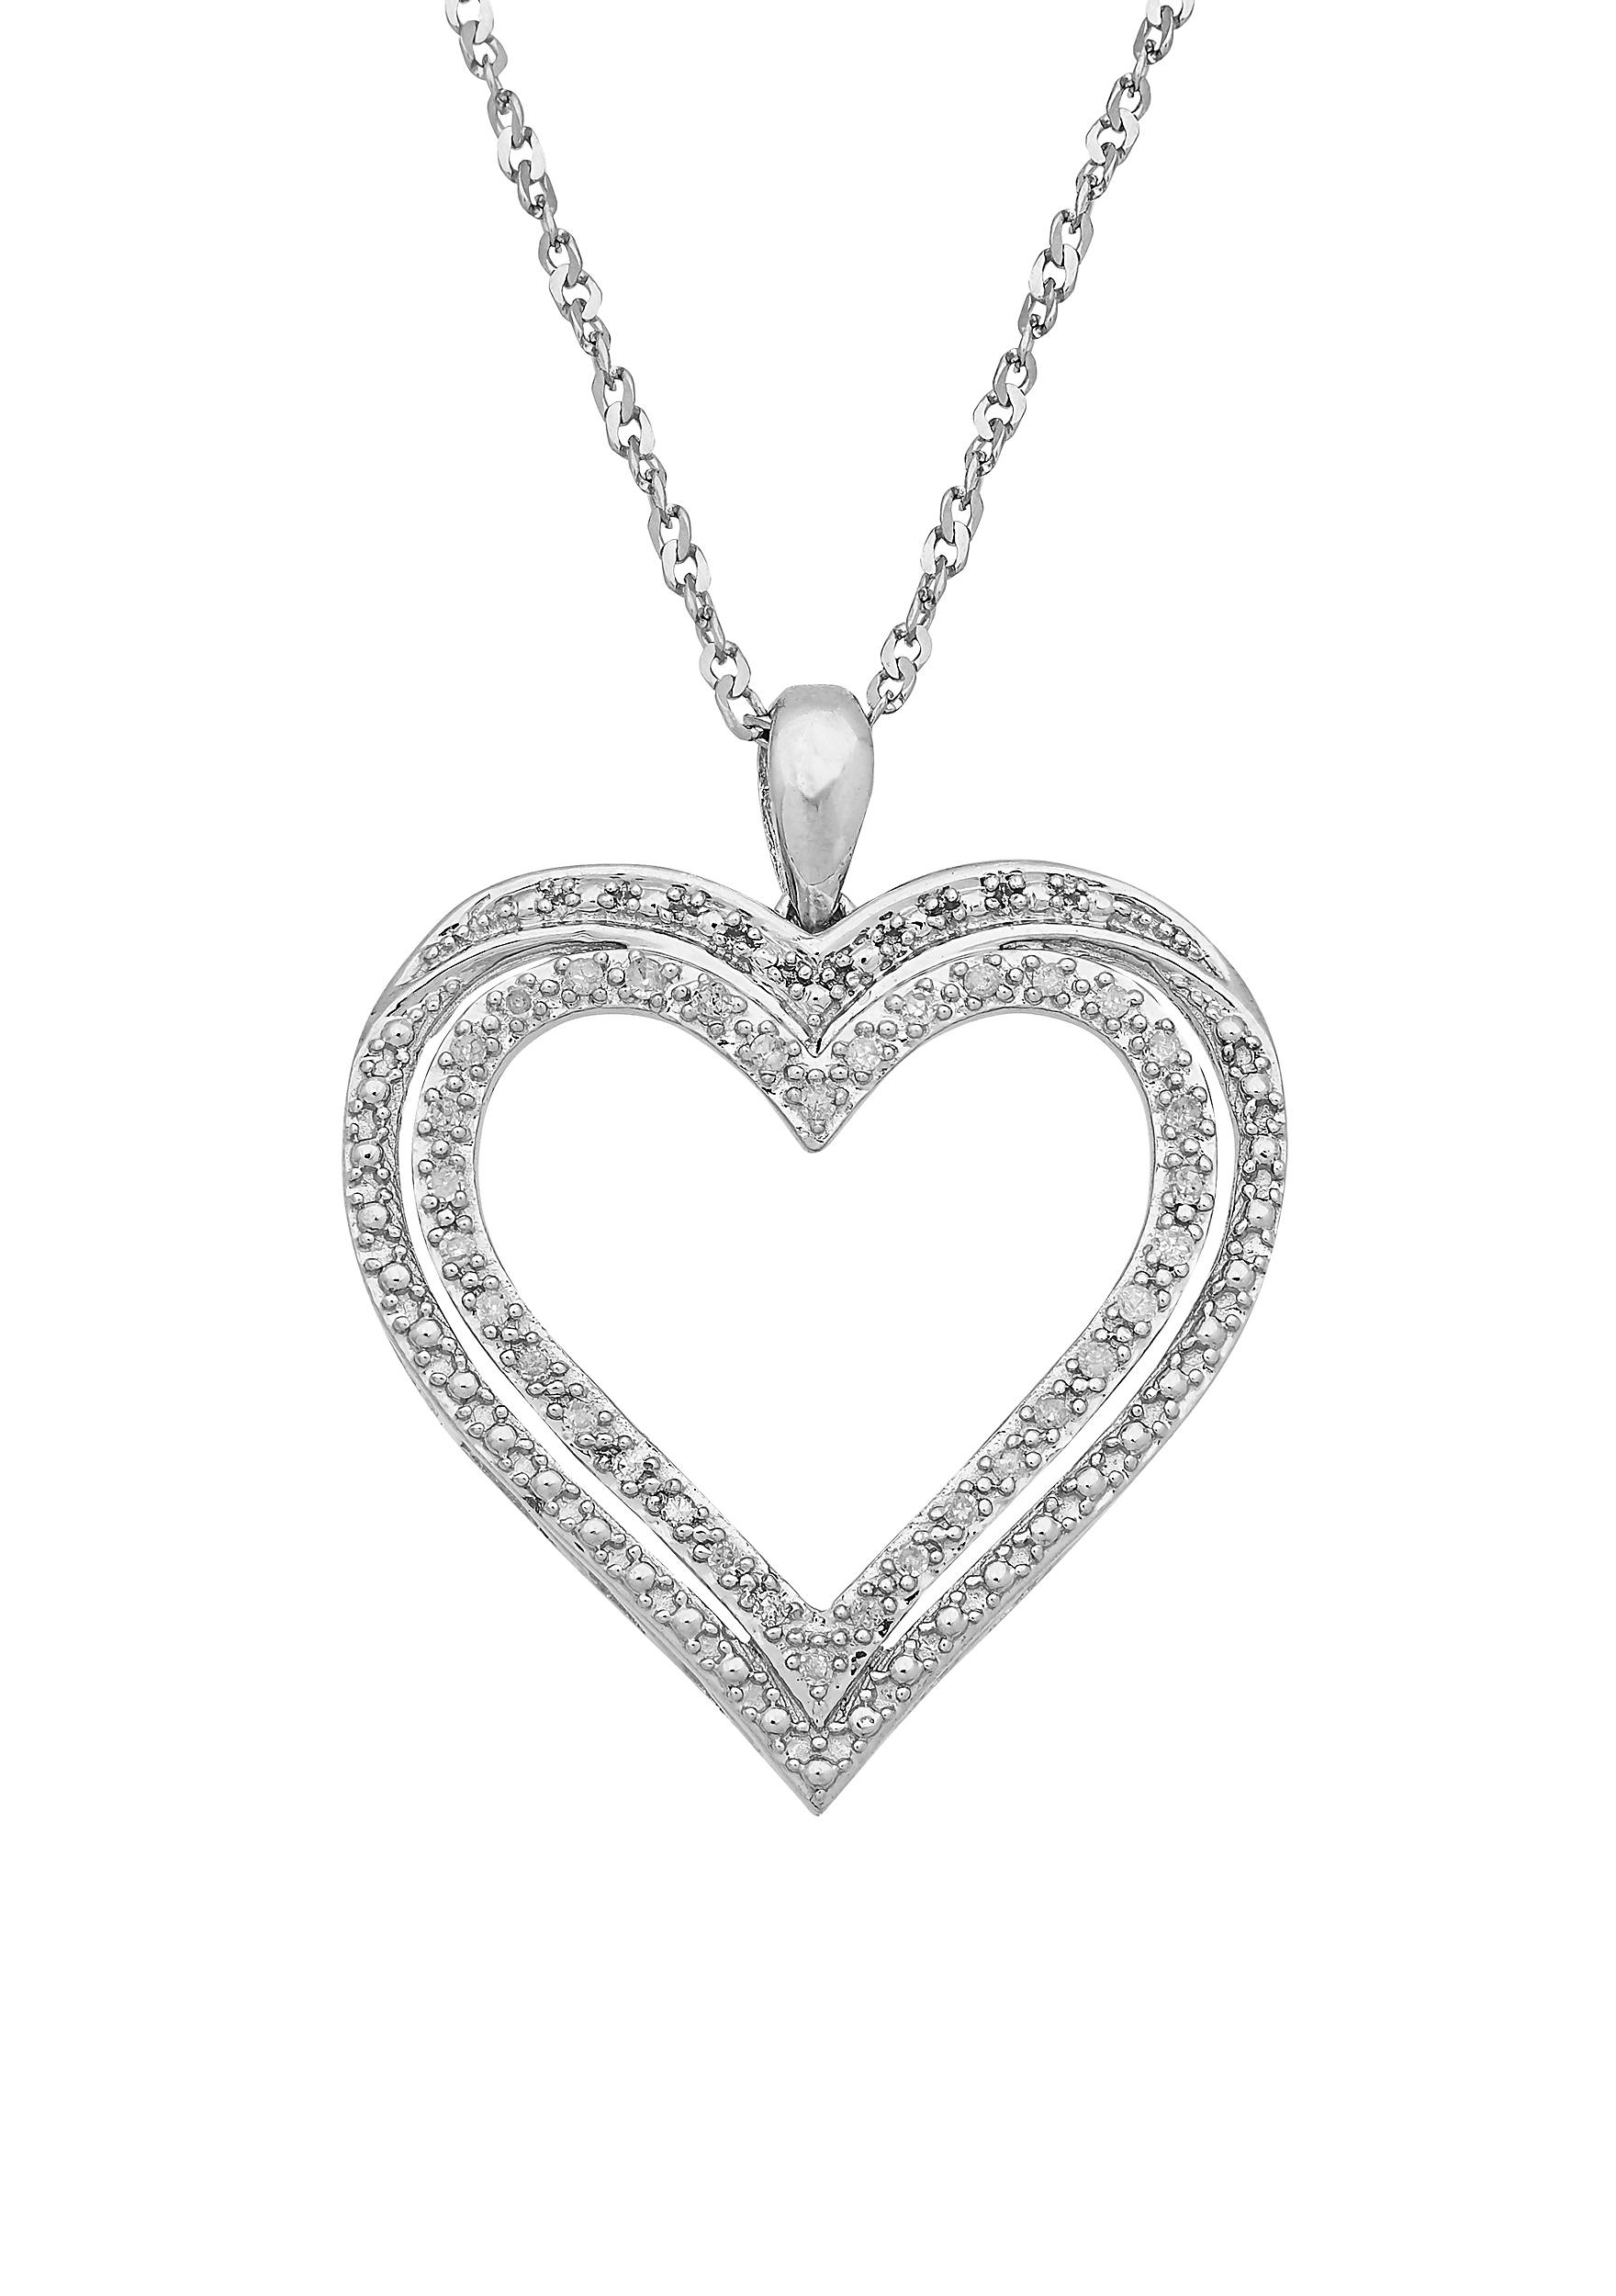 Belk co sterling silver diamond heart pendant necklace belk sterling silver diamond heart pendant necklace 5400453sbx59409c18 images mozeypictures Choice Image